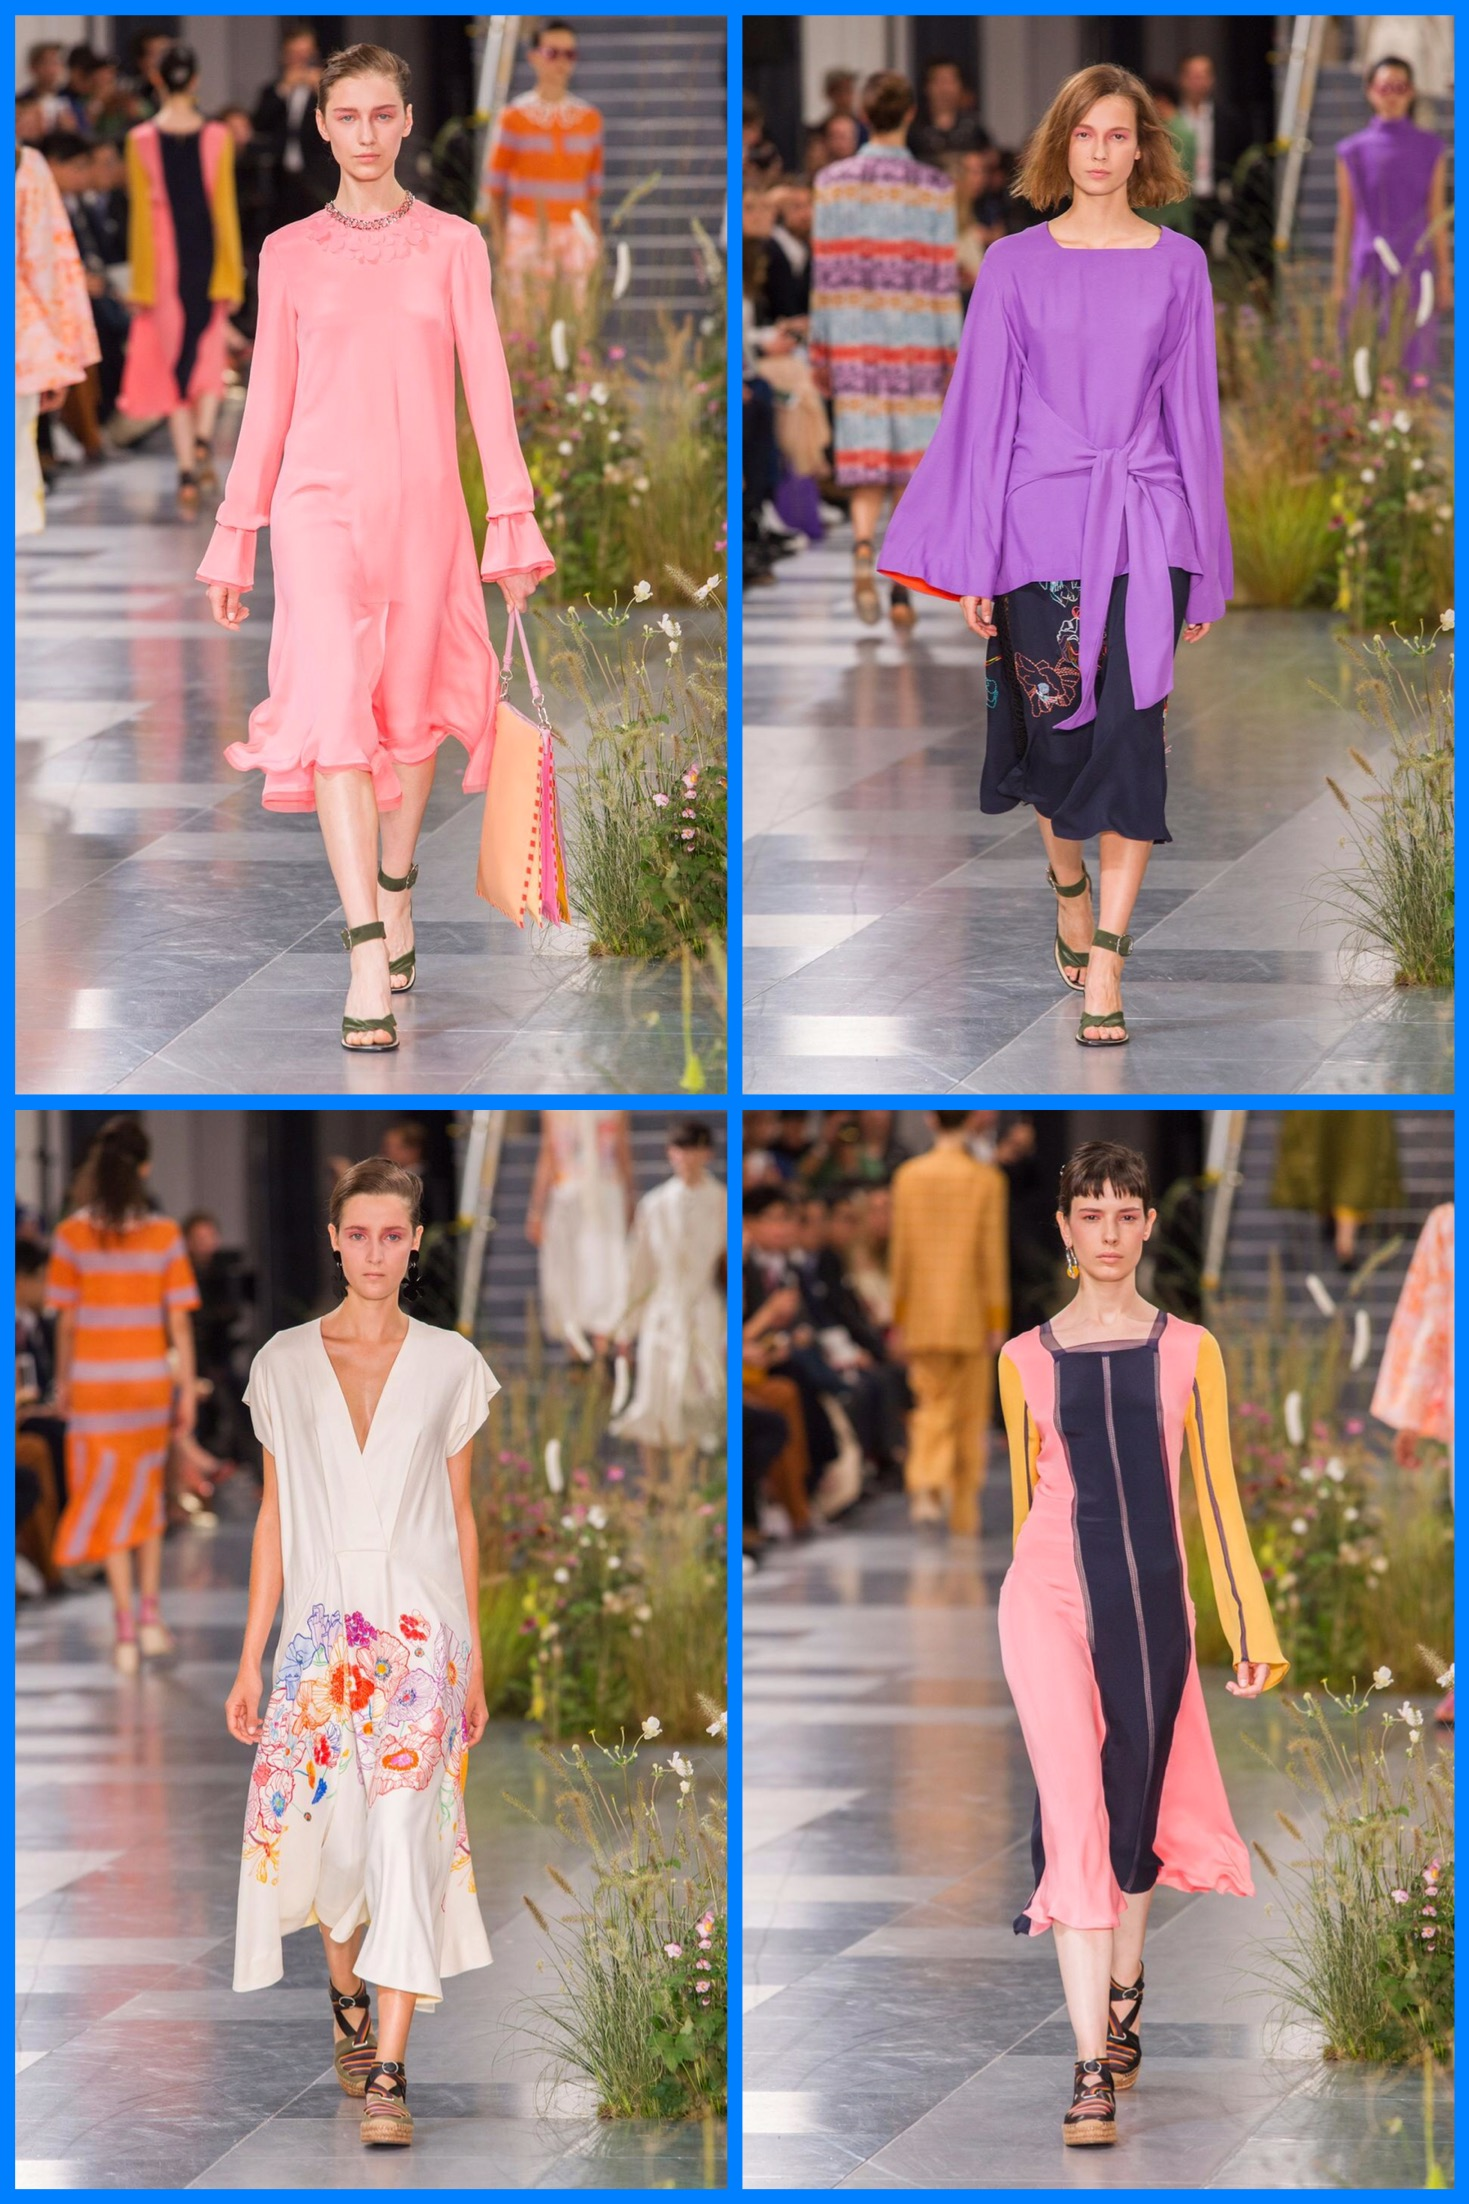 london-fashion-week-pret-a-porter-spring-summer-2017-style-paul-smith